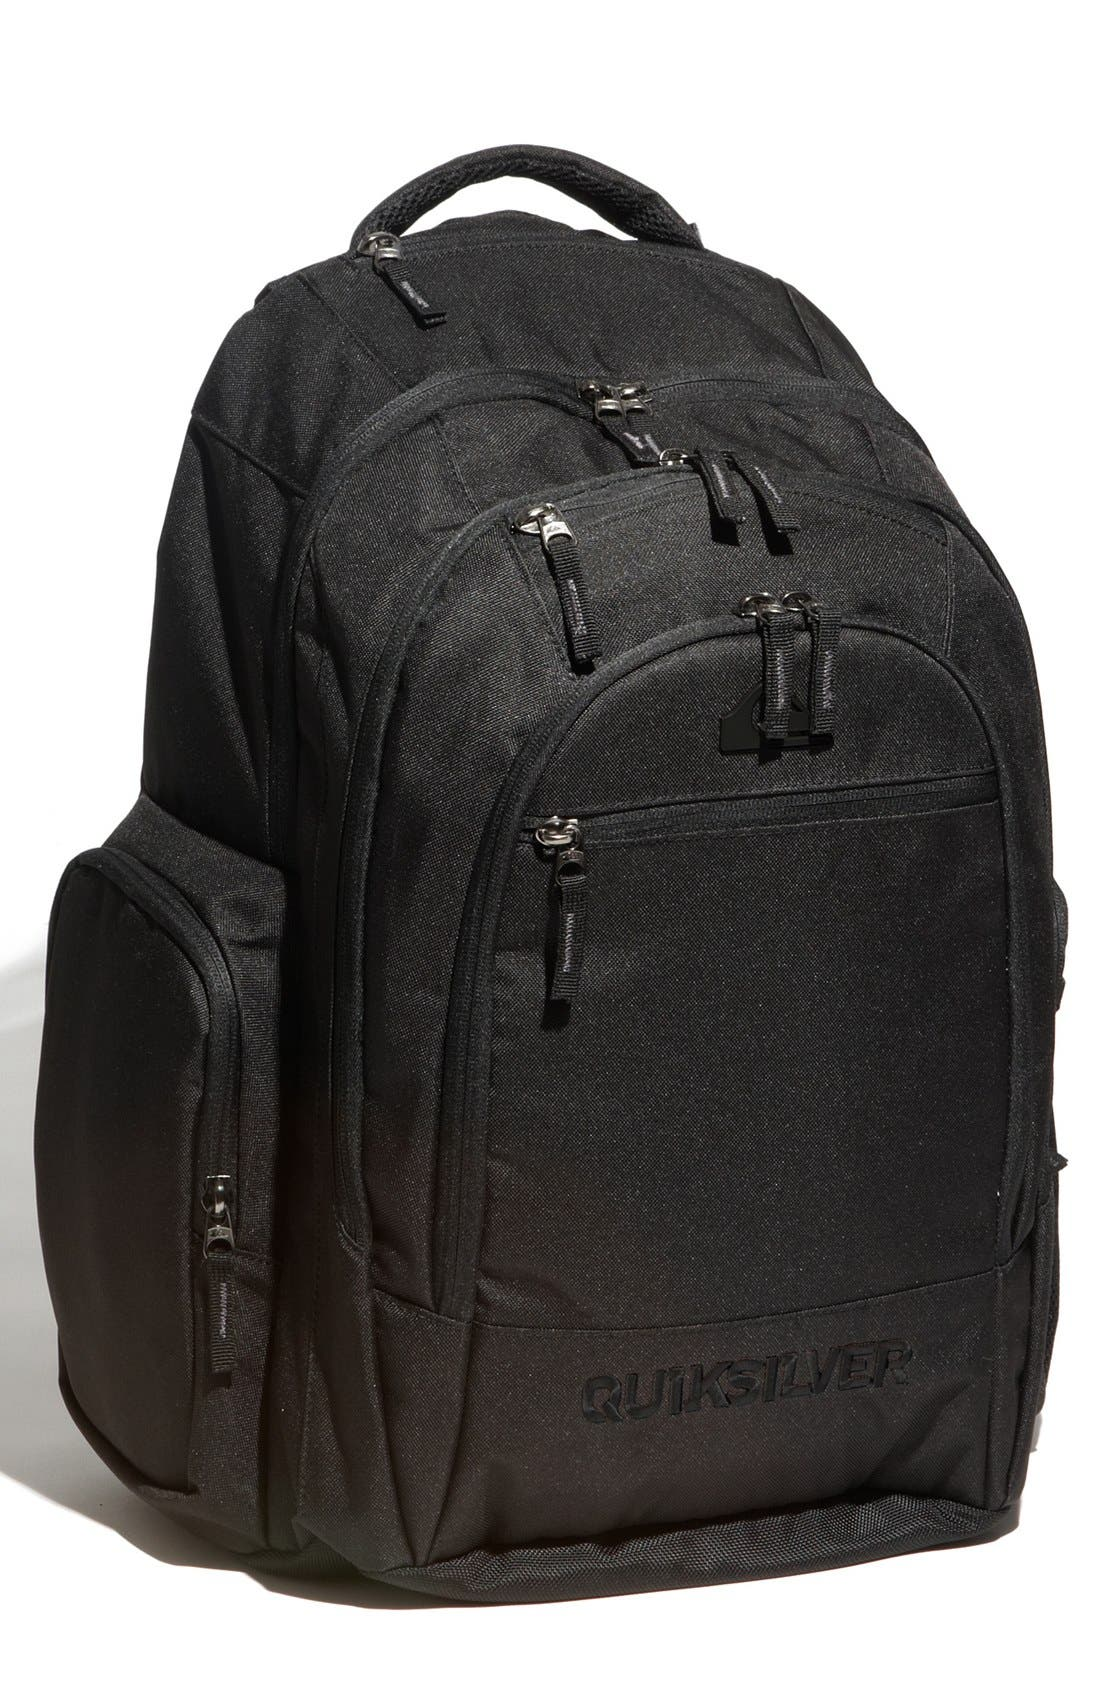 Alternate Image 1 Selected - Quiksilver 'Daddy' Day Bag